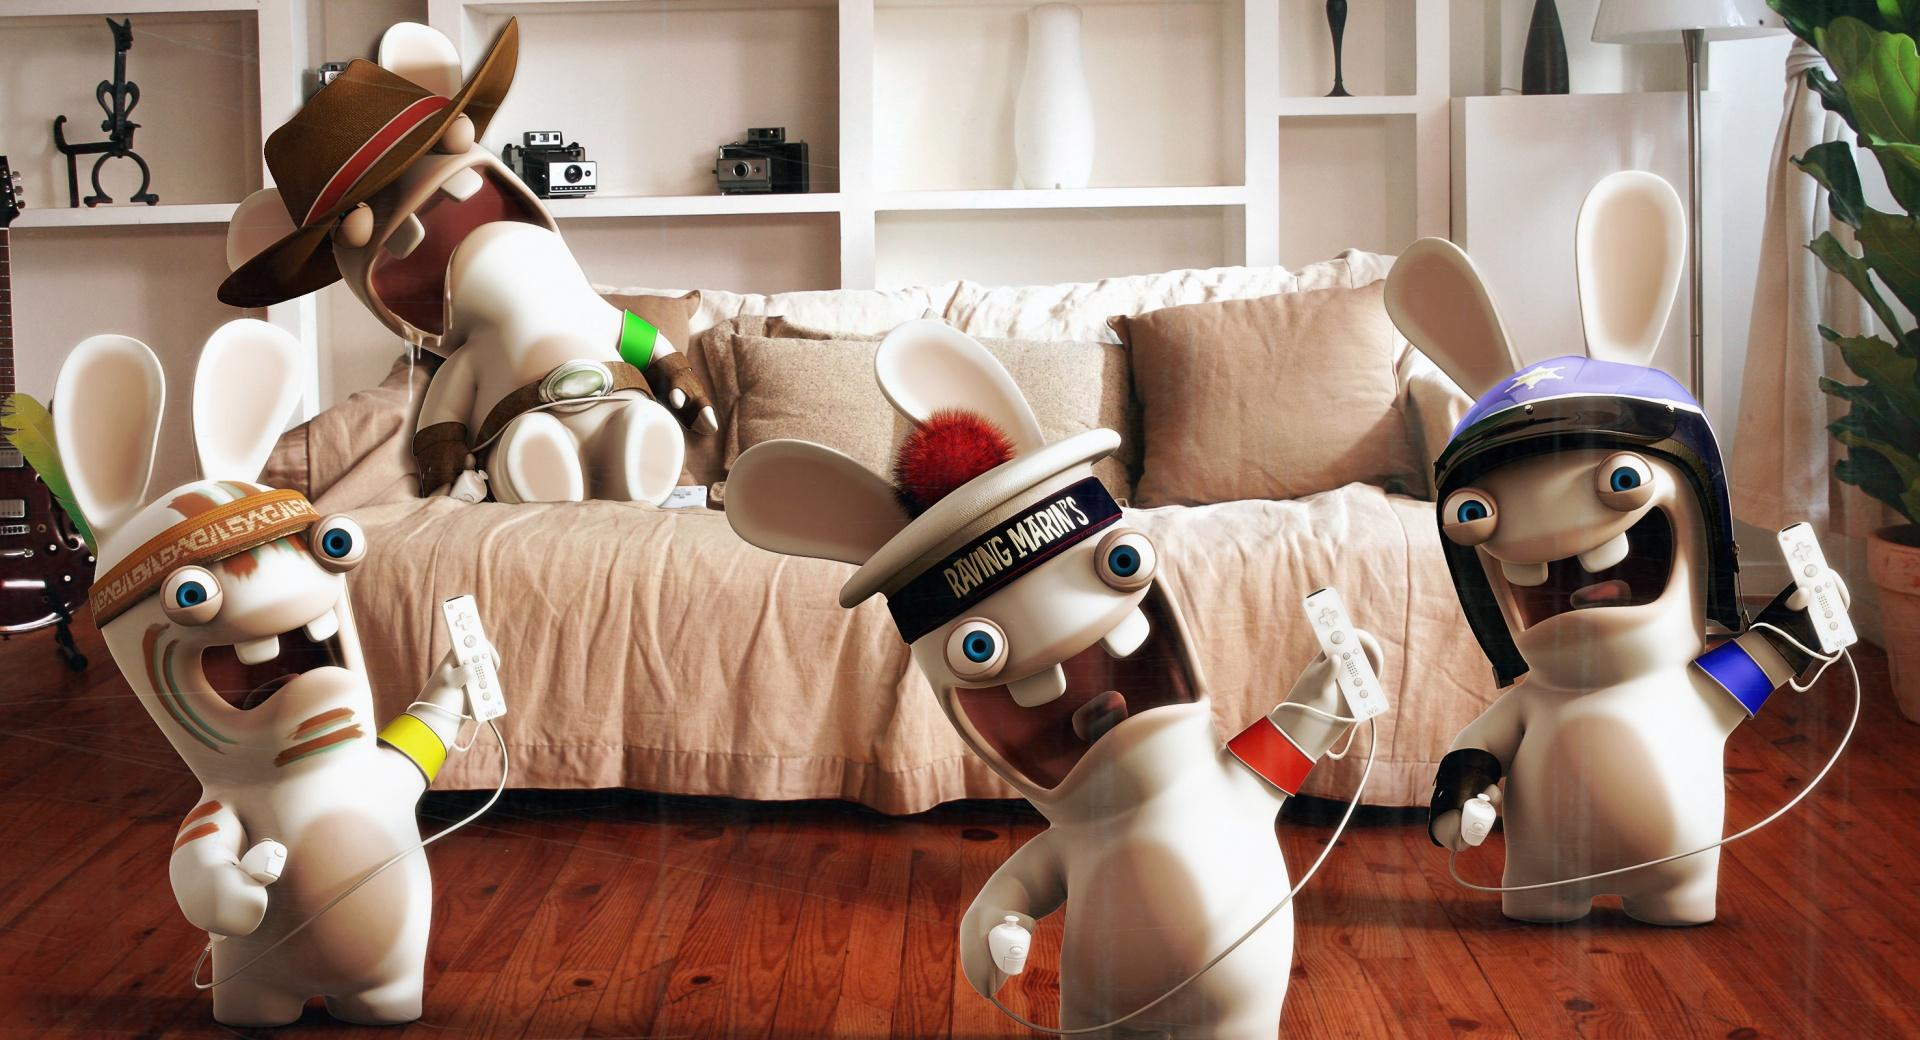 Rayman Raving Rabbids Playing Wii wallpapers HD quality